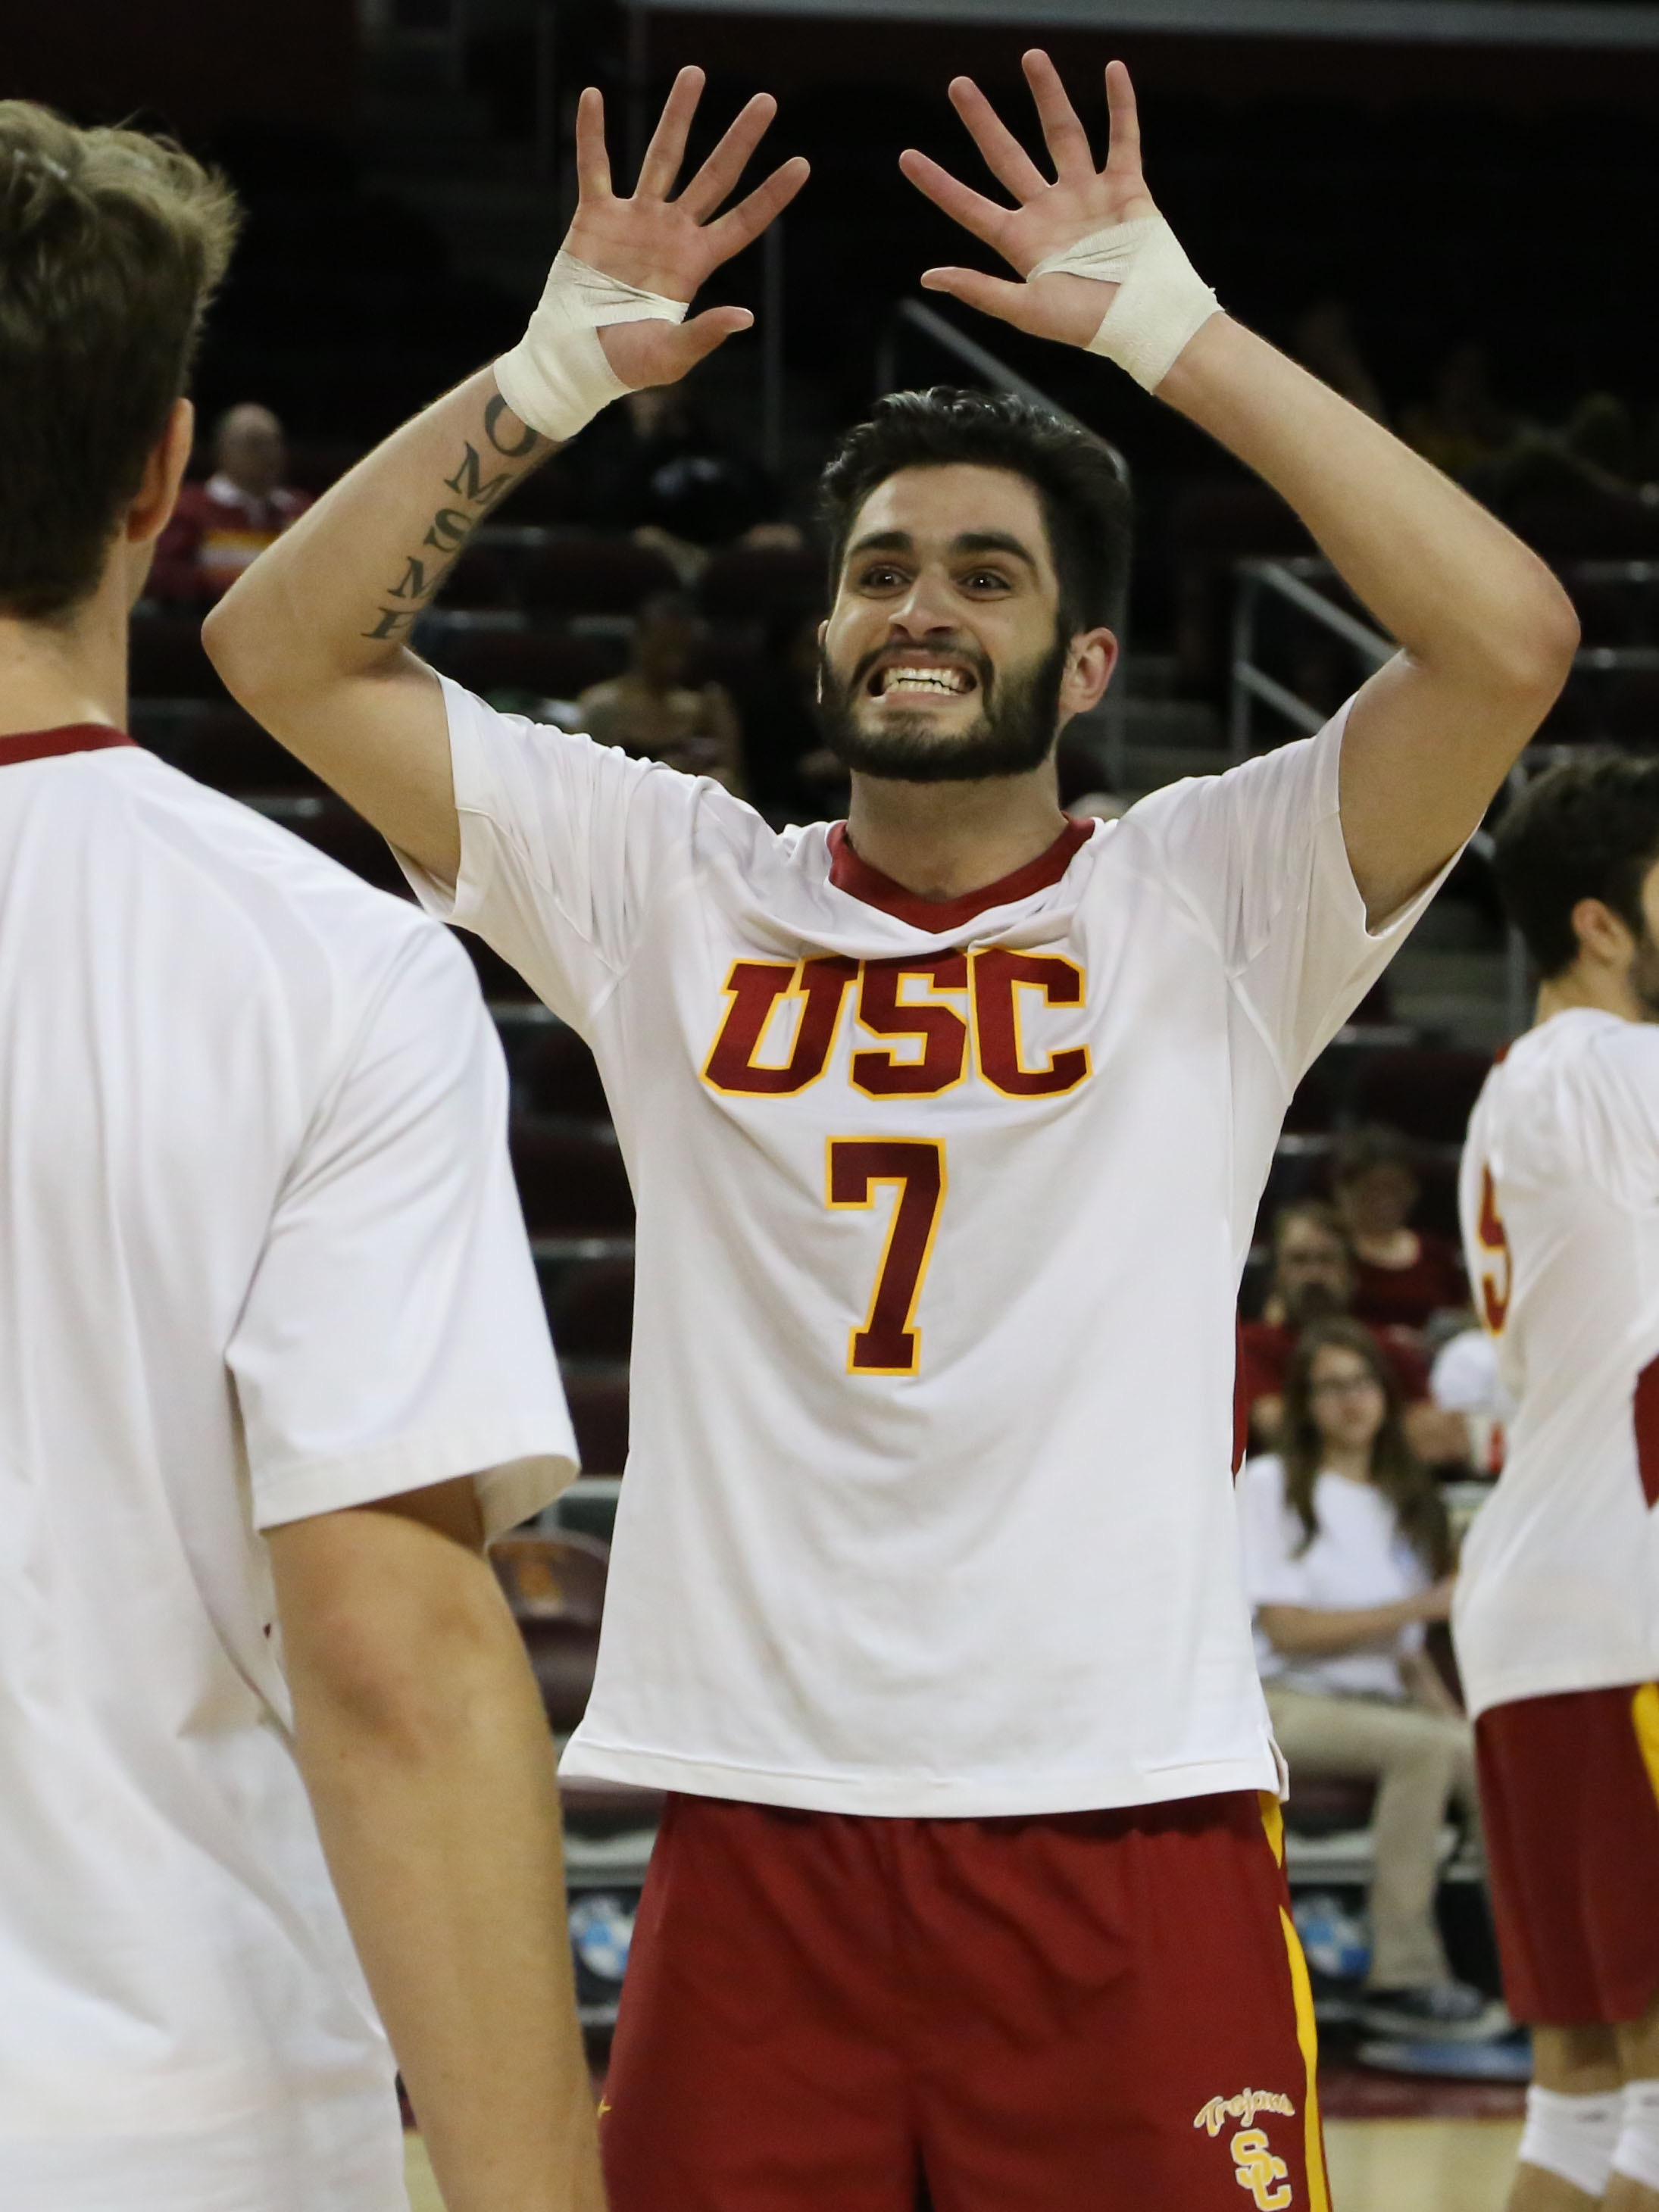 Gert Lisha USC Men's Volleyball